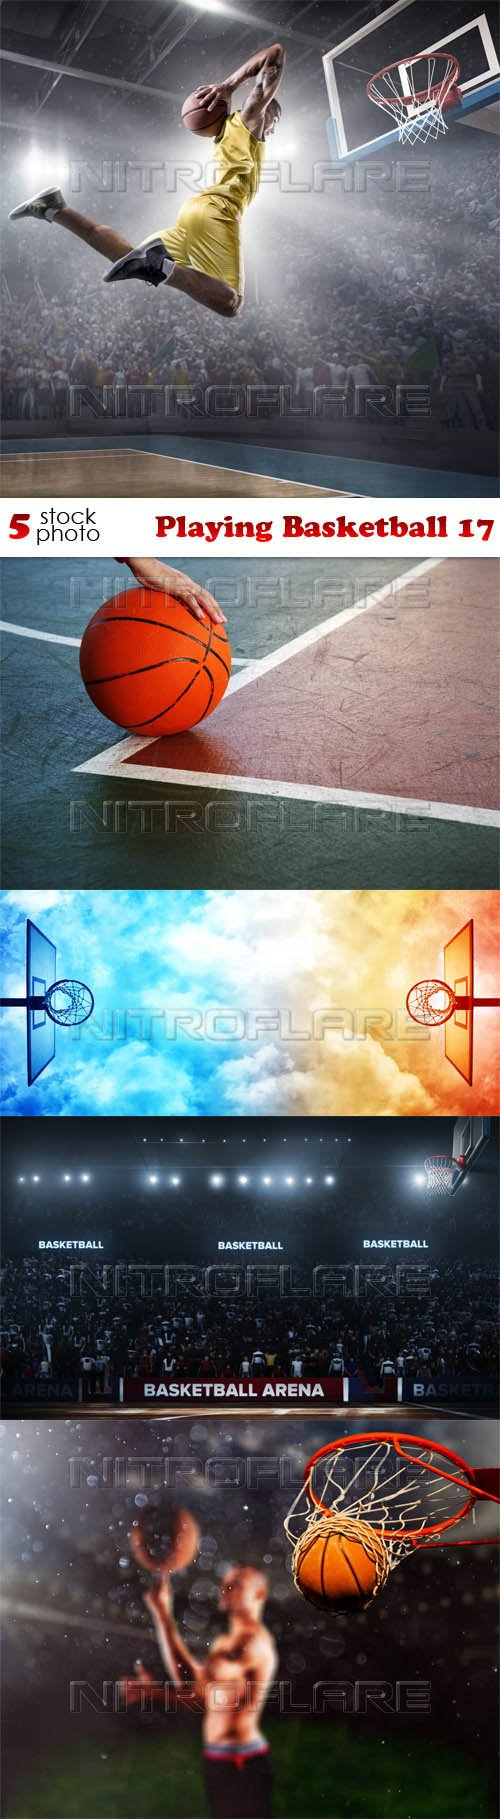 Photos - Playing Basketball 17